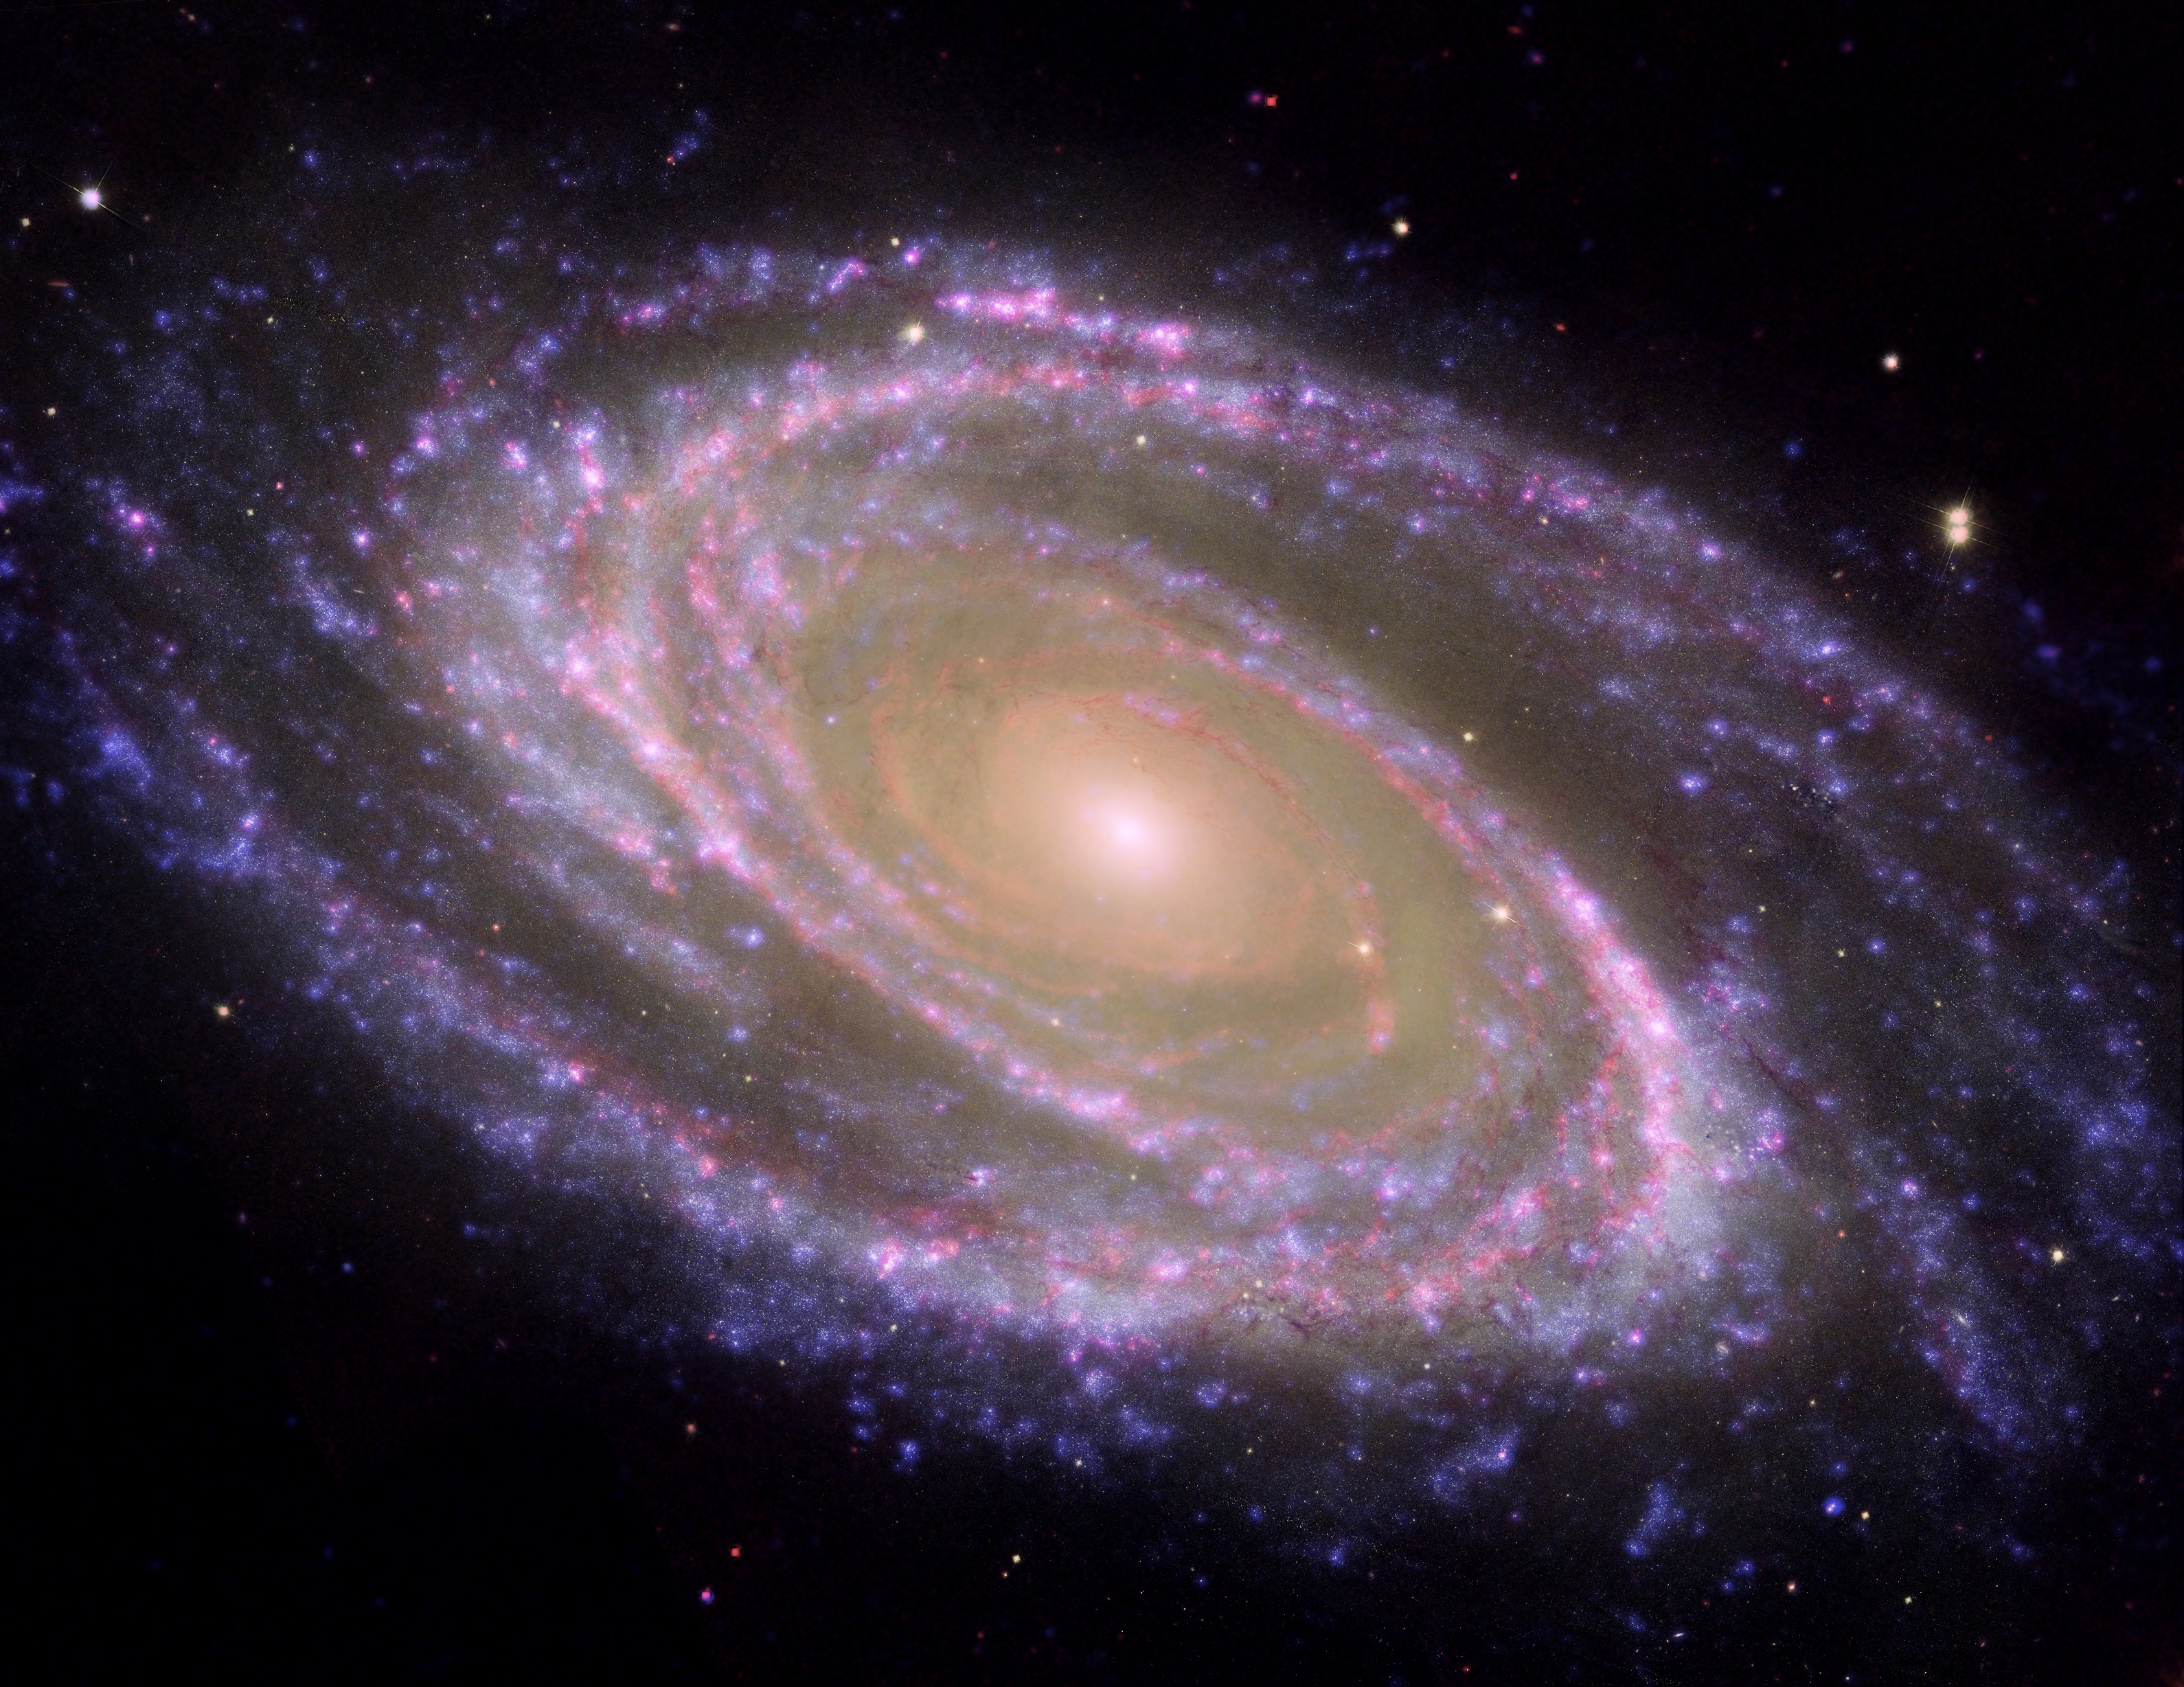 andromeda galaxy 3 3d guide to the galaxy courtesy nasa jpl